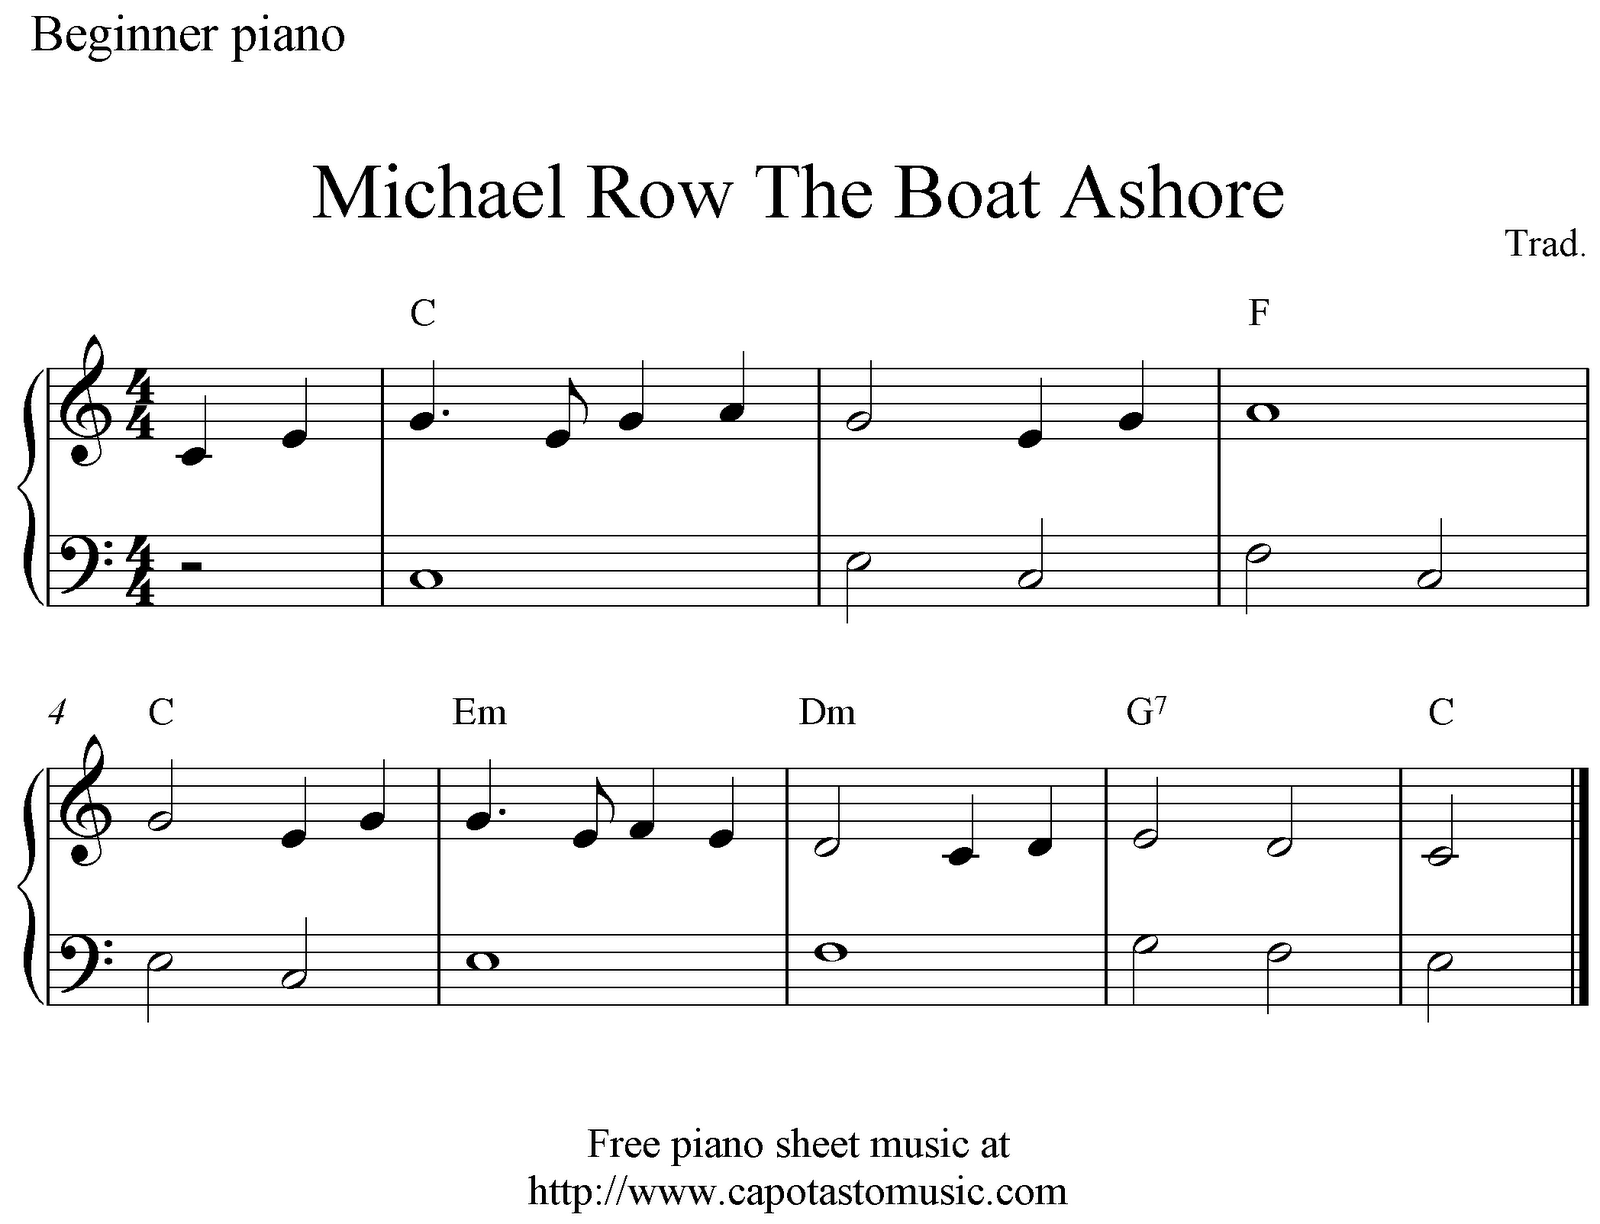 Free easy piano sheet music for beginners, Michael Row The Boat Ashore